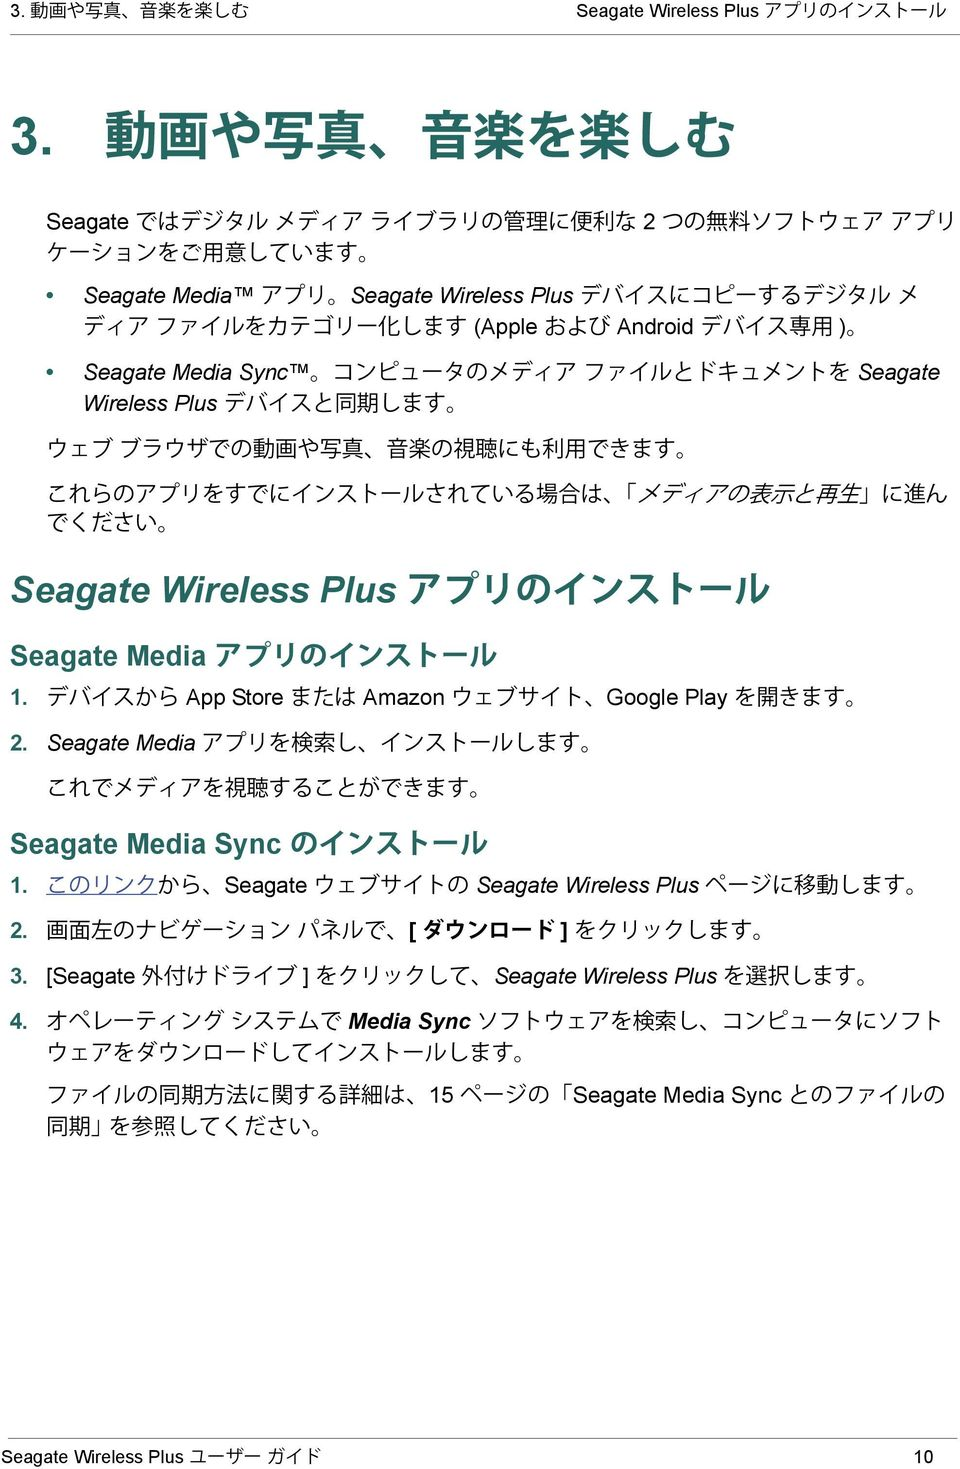 Wireless Plus Seagate Wireless Plus Seagate Media 1. App Store Amazon Google Play 2.